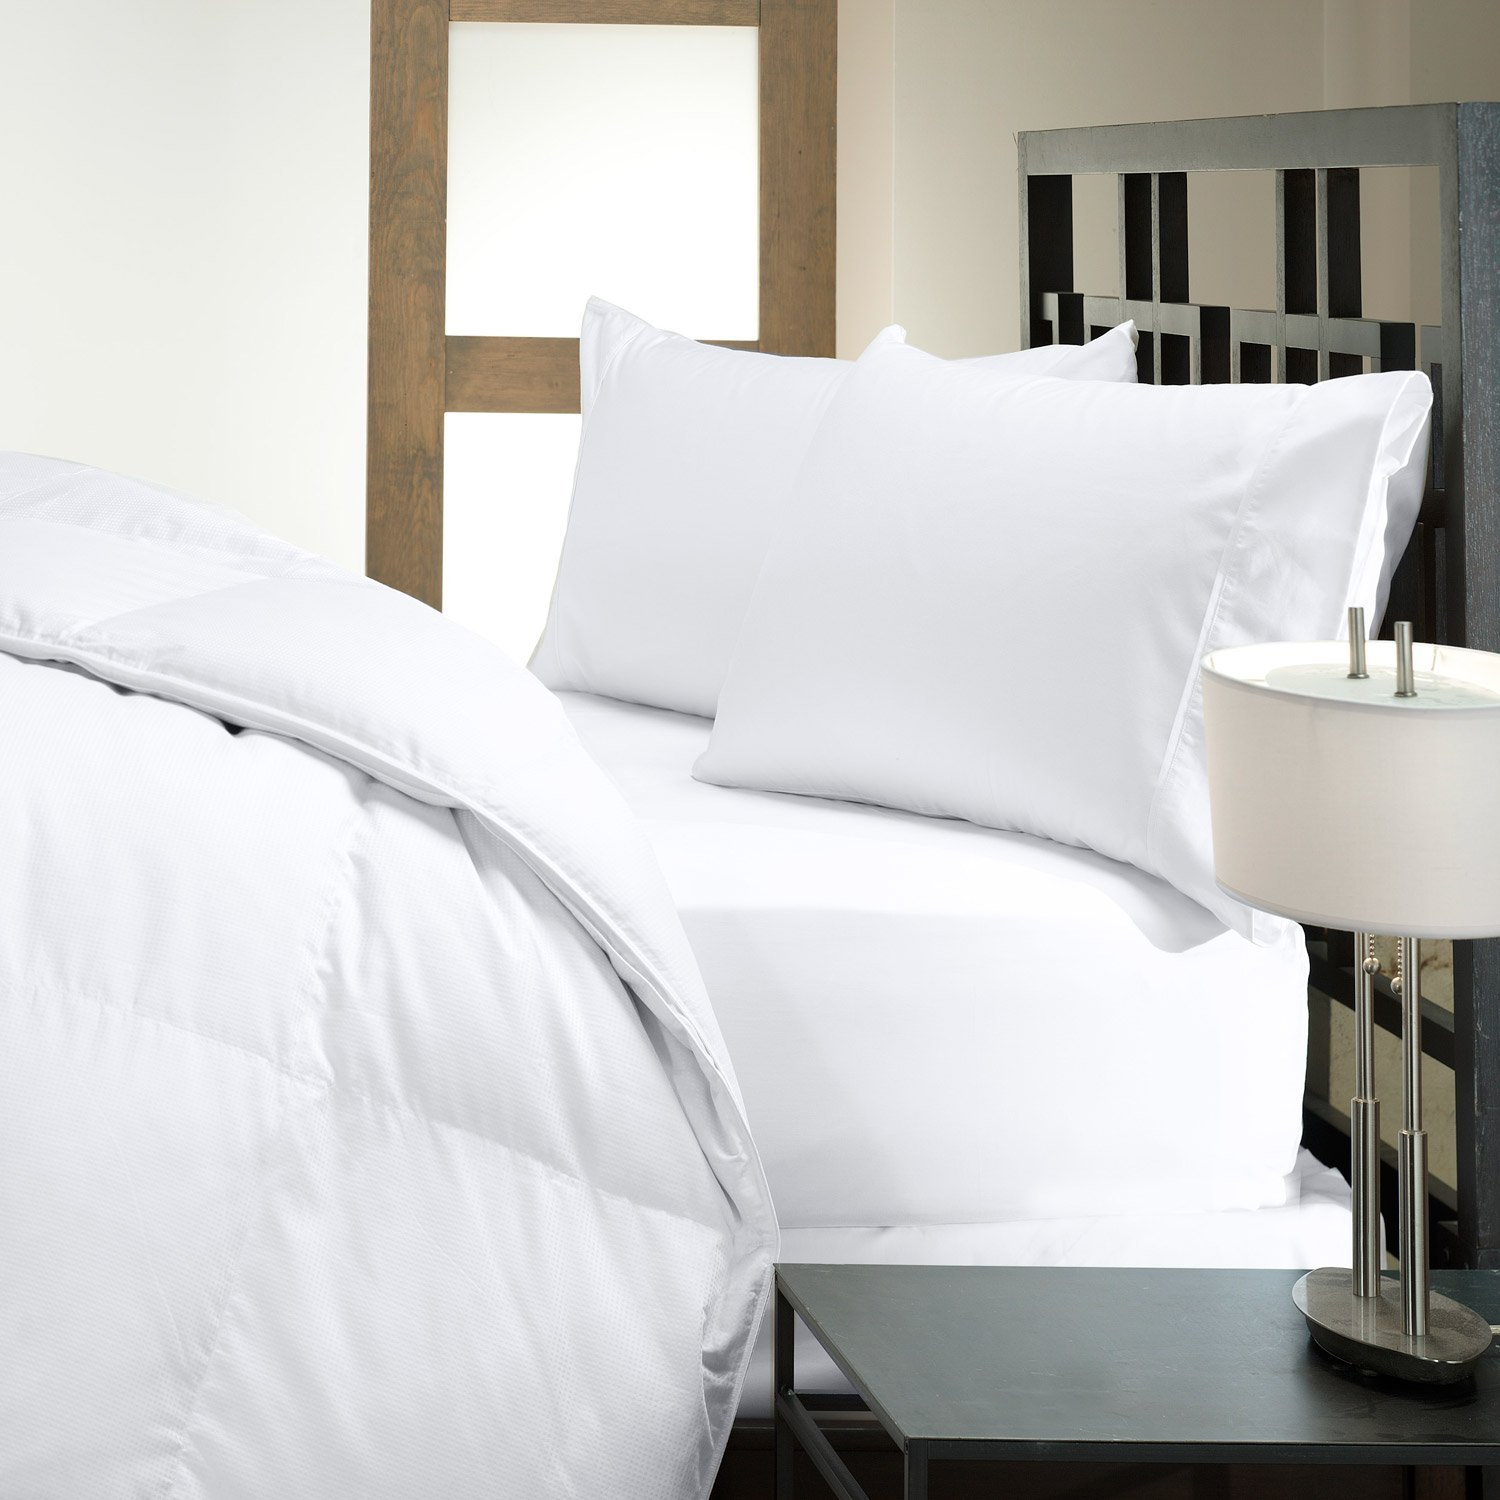 DOWNLITE Closeout Sale - Hotel Like Luxury Bedding Collection - Hypoallergenic 50/50 Down and Feather Pillow (Queen)